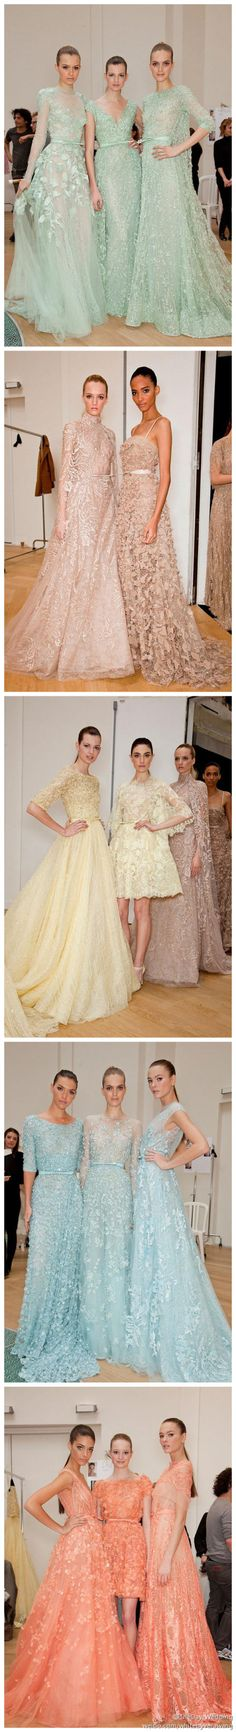 Elie Saab. Some of the dresses are really pretty,  some of the others are not my style.